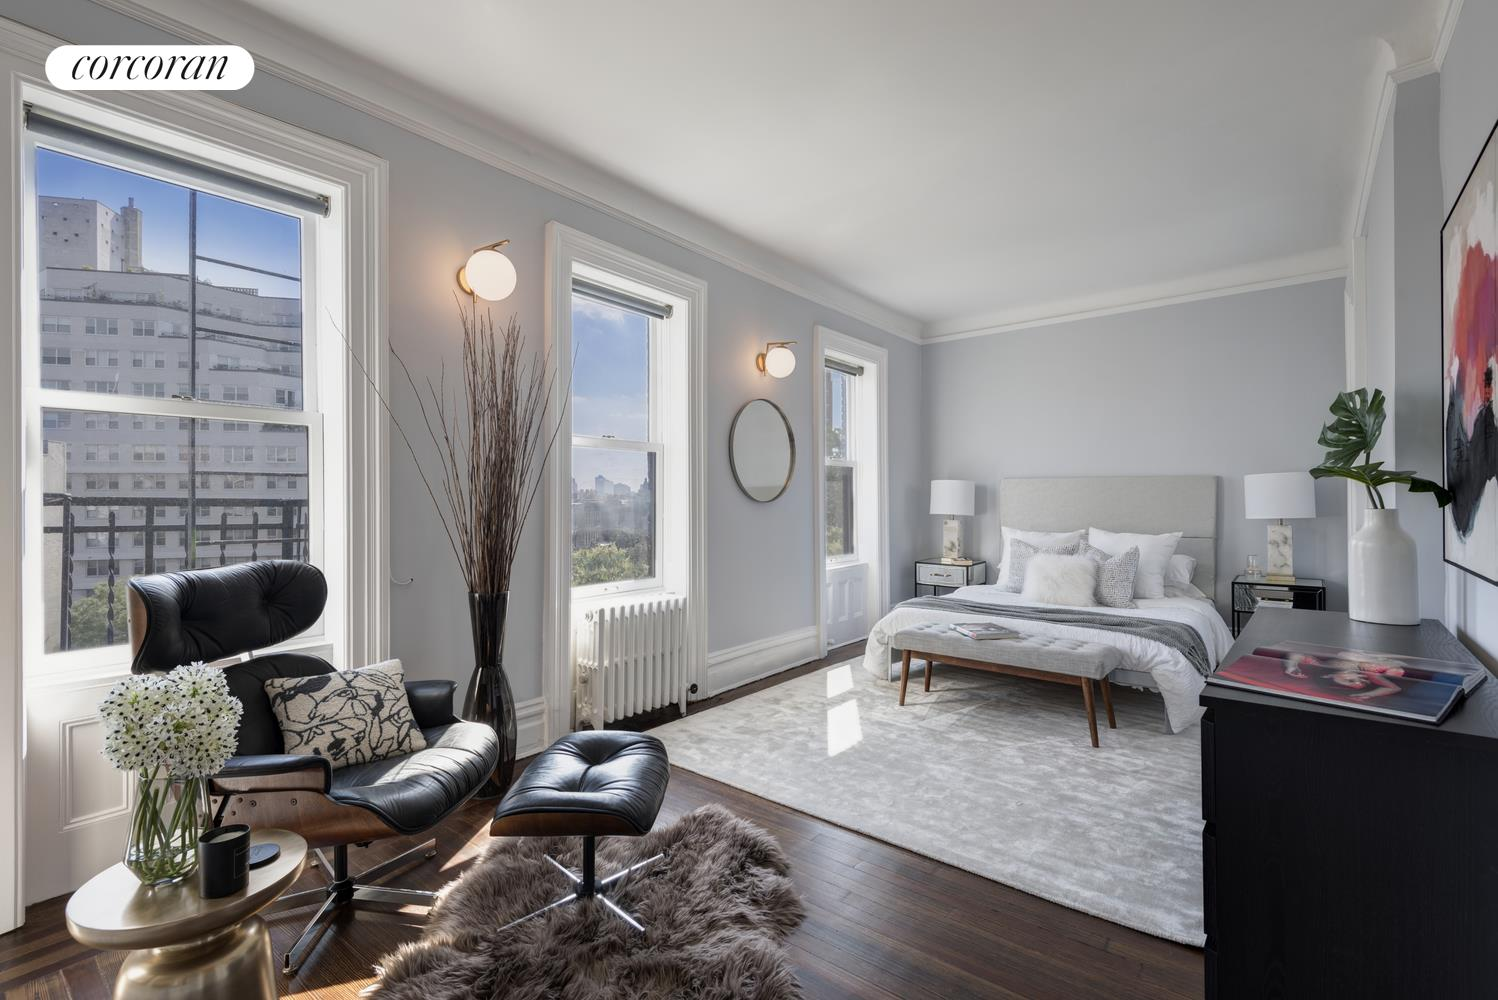 Amazing 126 West 11th Street, 74, View From Living Room Design Ideas